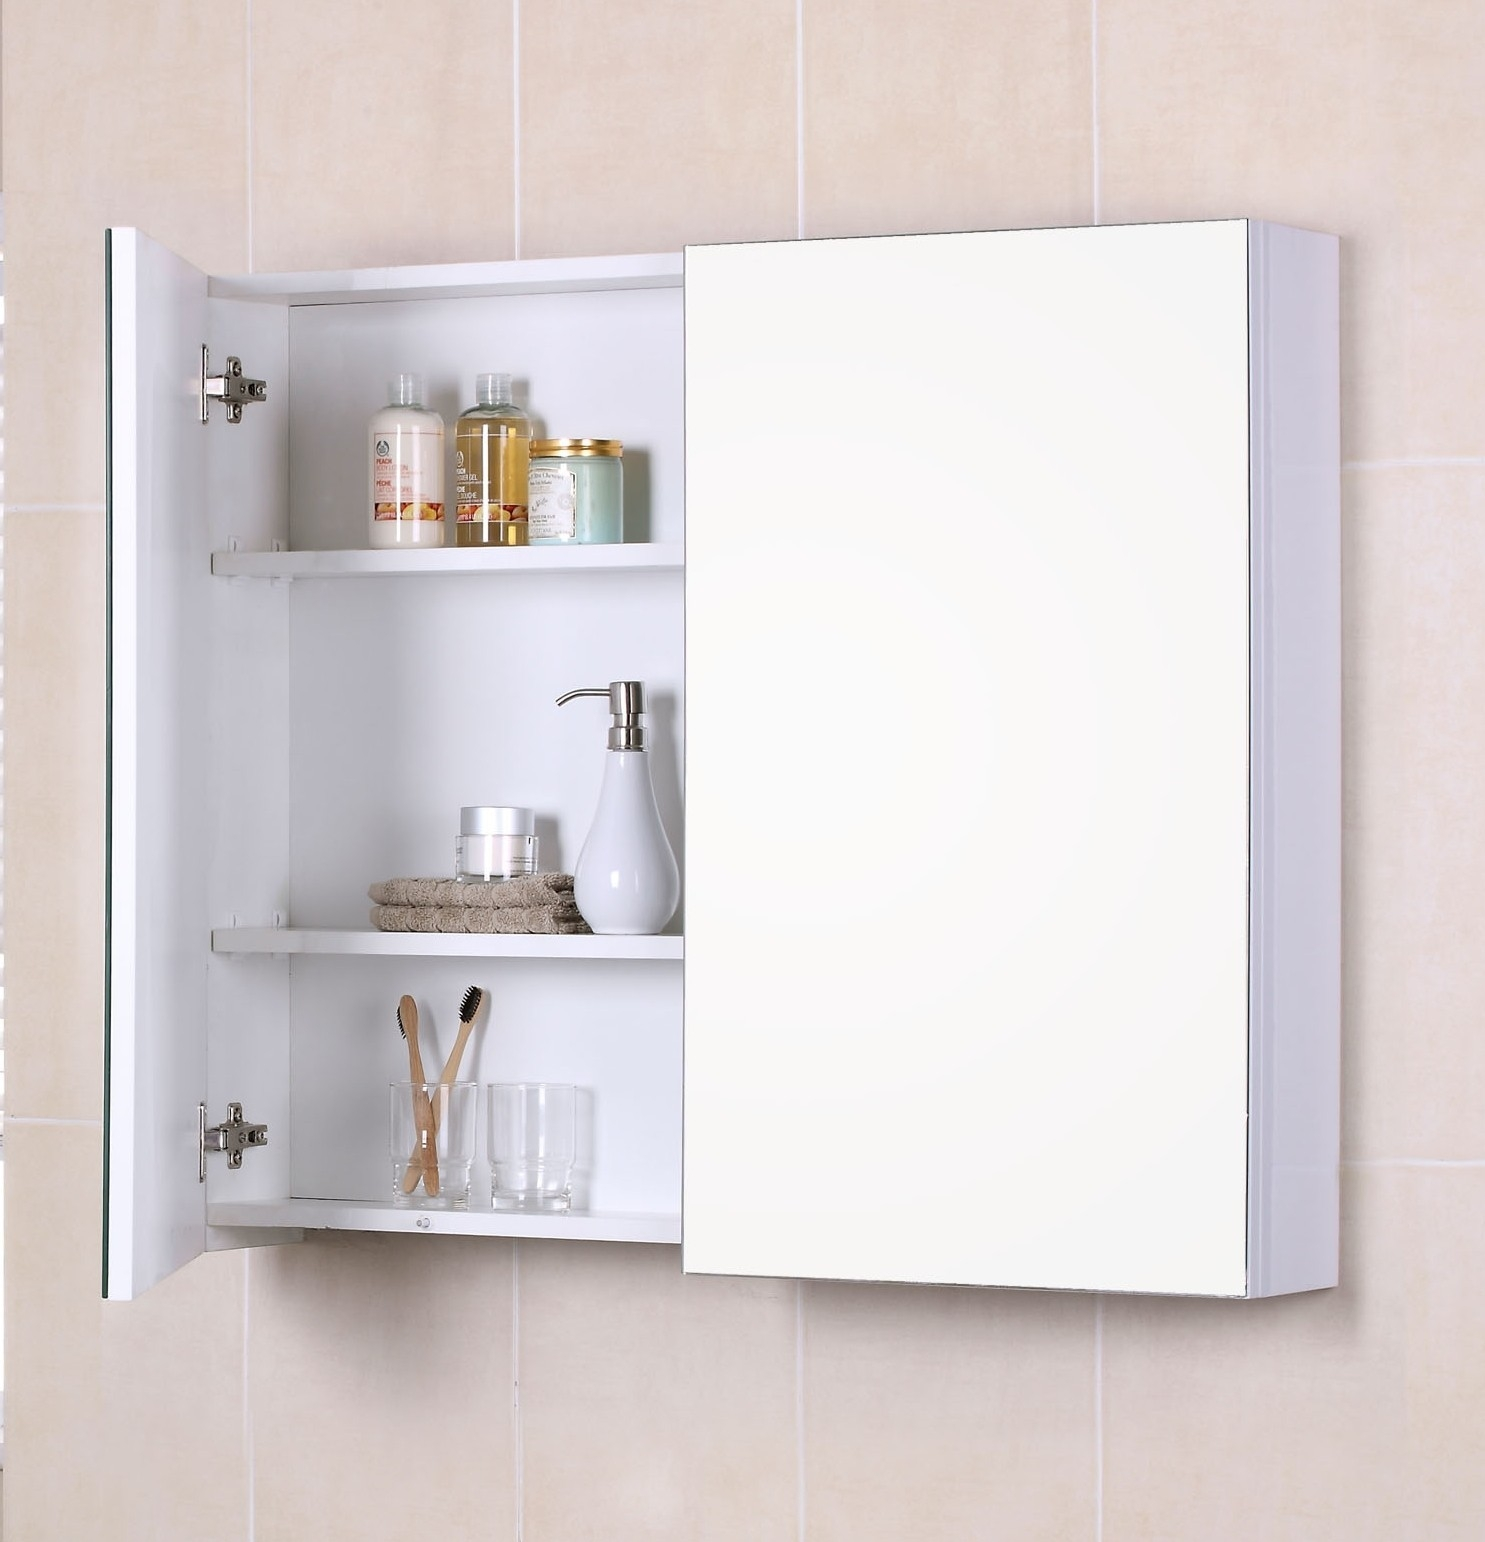 Newquay Mirrored Wall Bathroom Cabinet